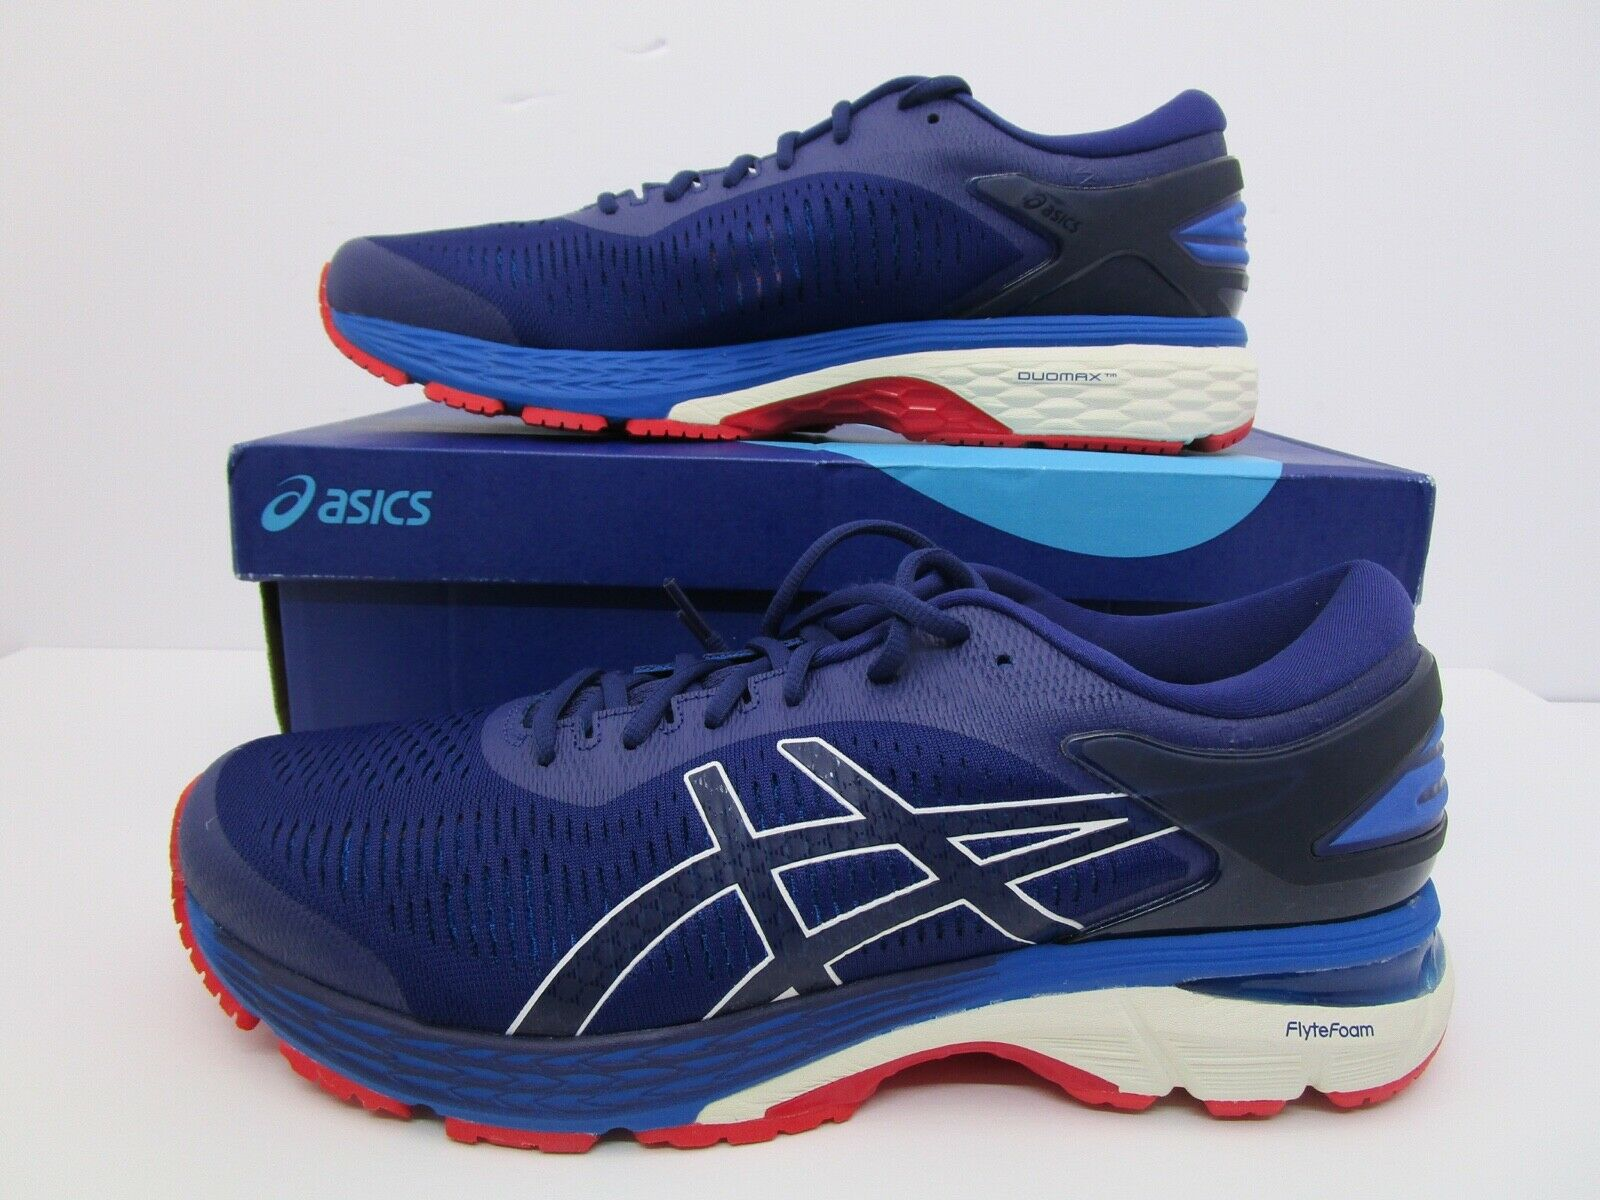 Men's Asics GEL-Kayano 25 - Indigo bluee Cream Size 12US 1011A019-400